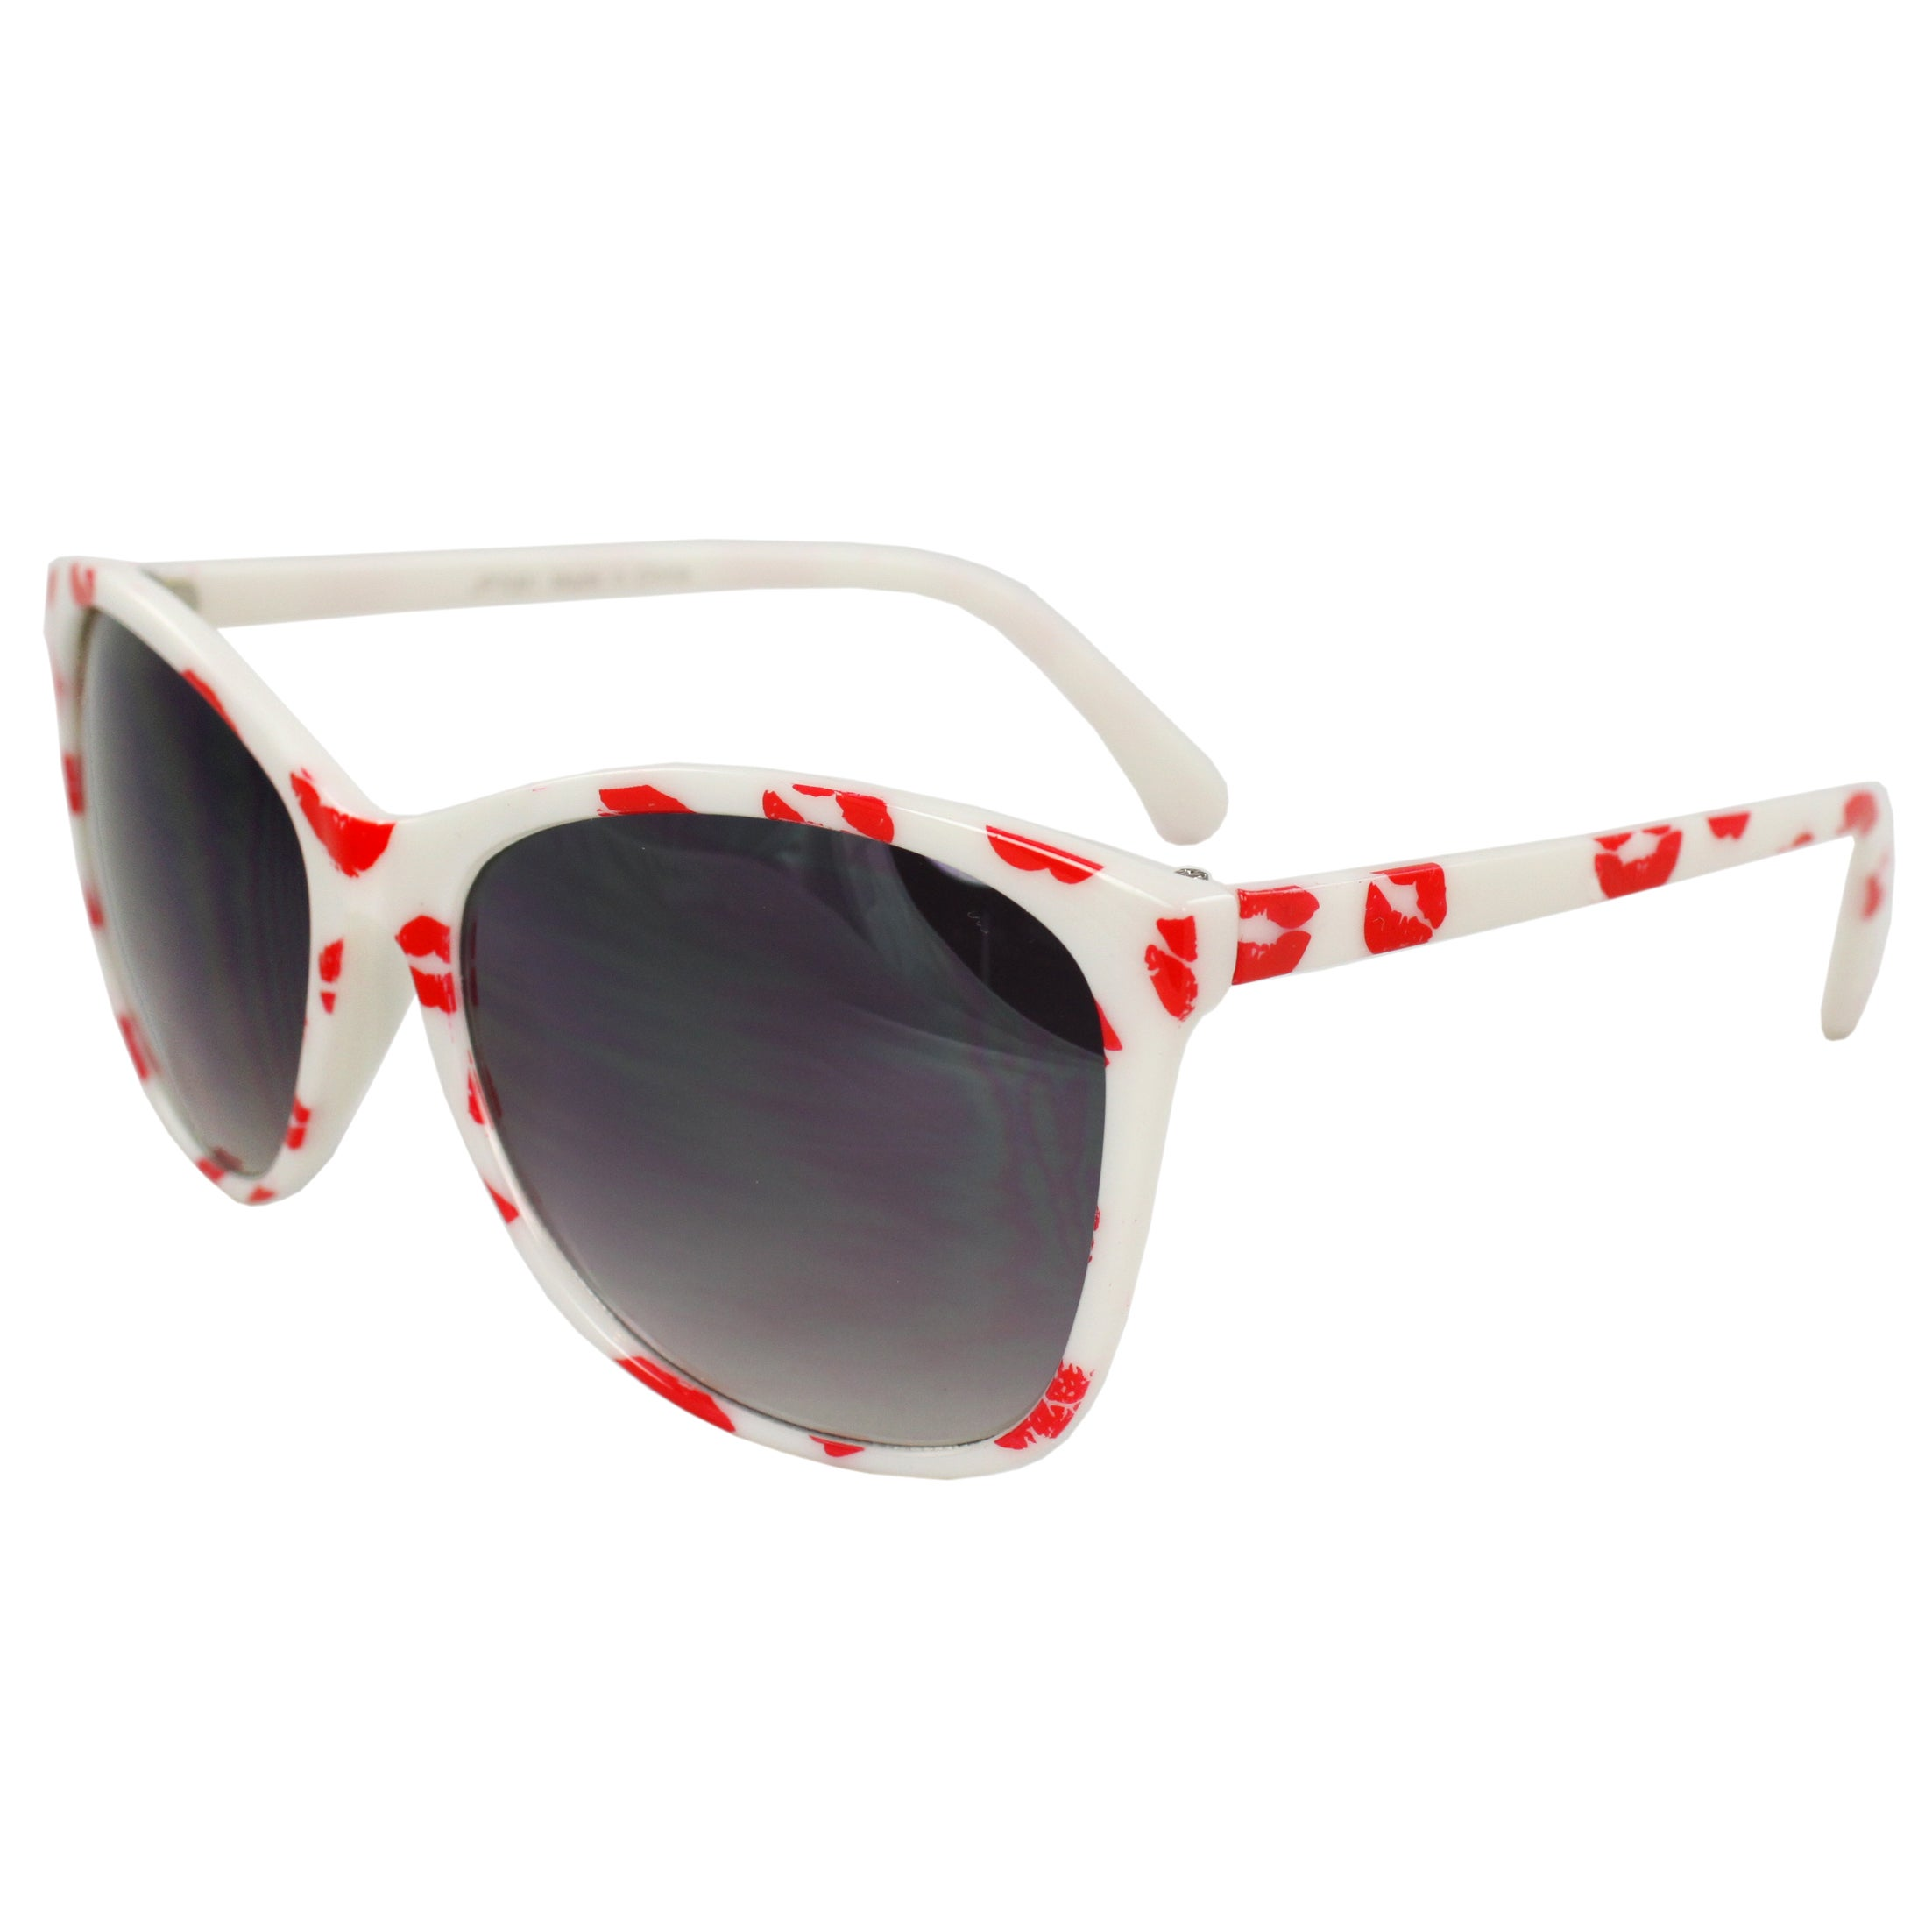 Women's JP7091-WHTPB White Fashion Sunglasses